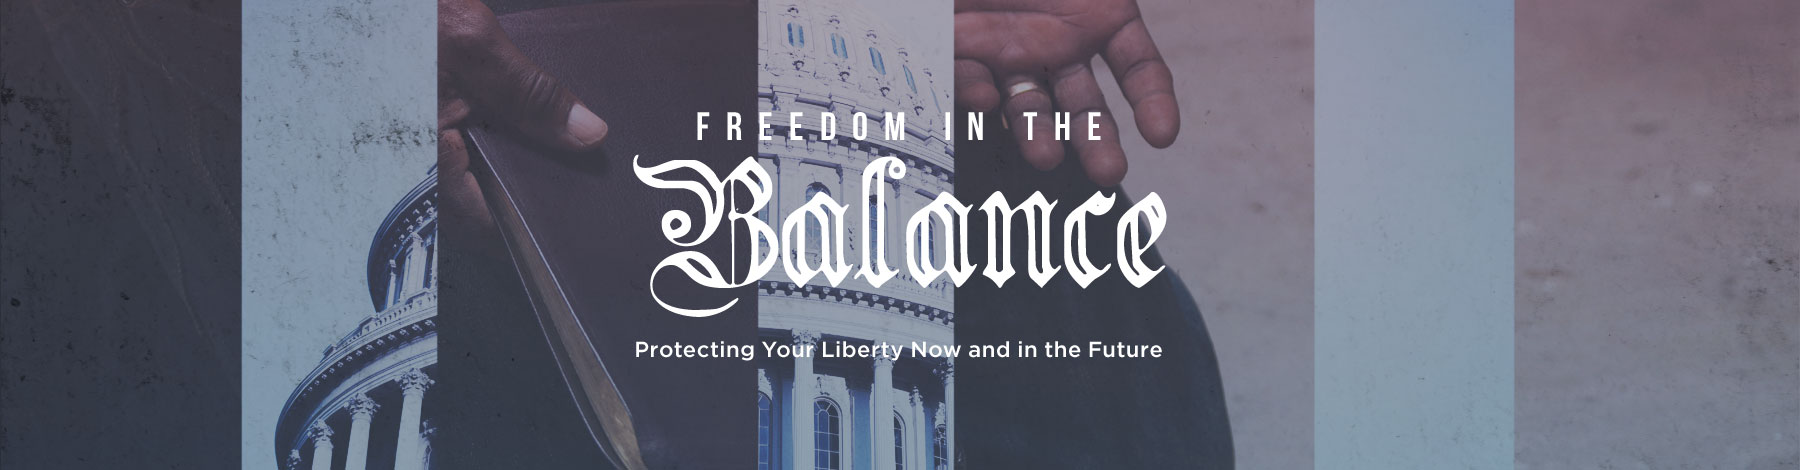 Freedom-in-the-Balance-Blog-Graphic-10-1-14